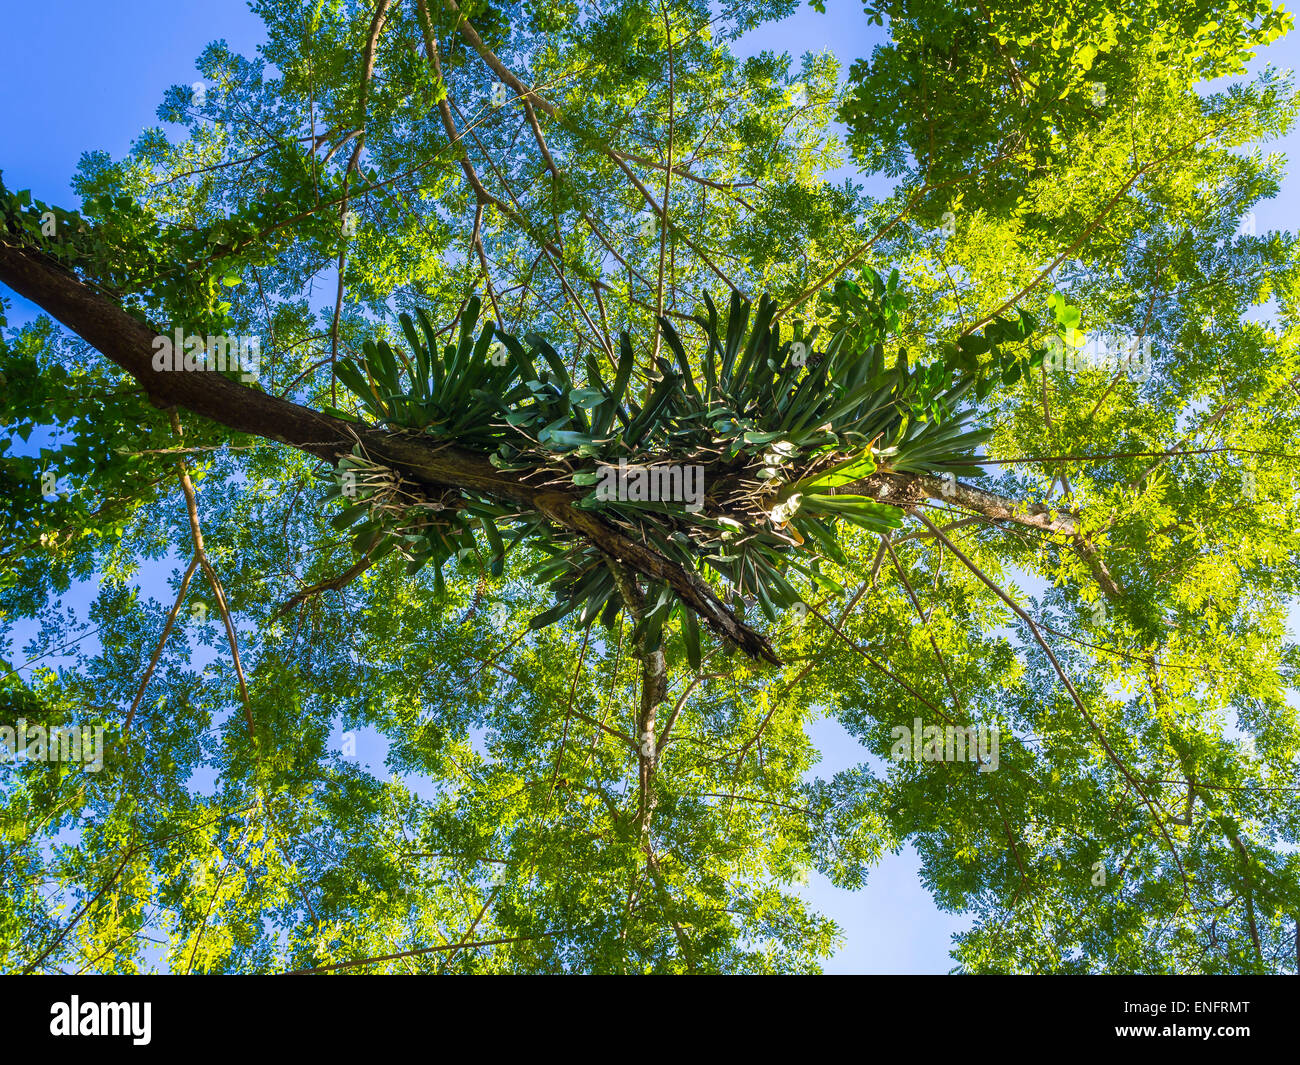 Lianas in the trees at Frenchmans Cove, Drapers, Portland region, Jamaica - Stock Image